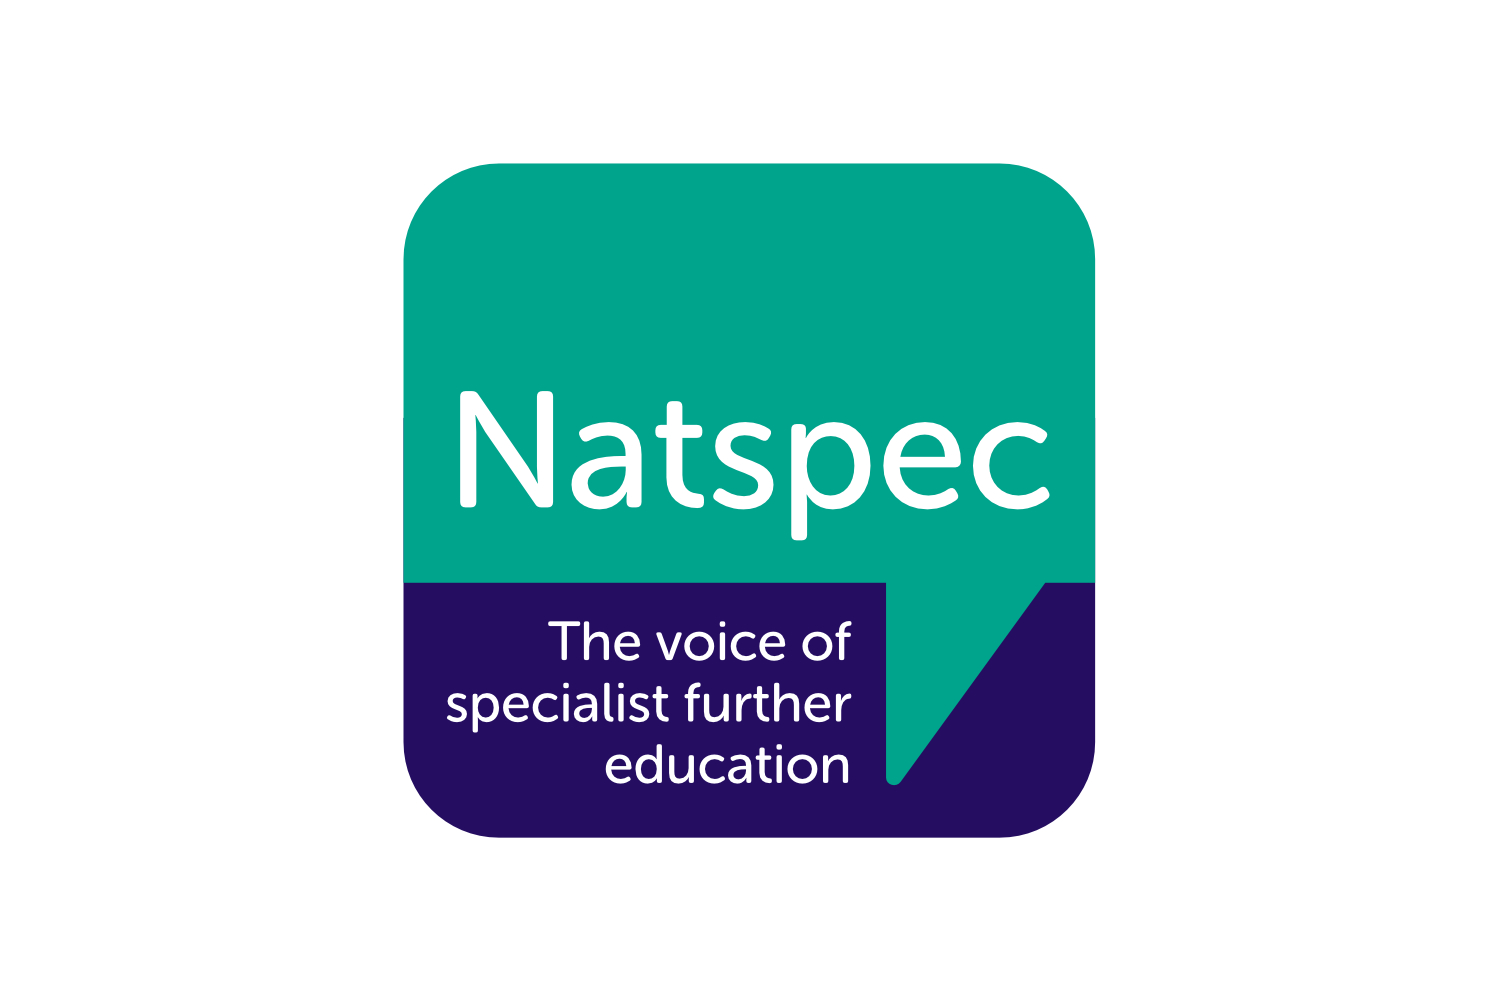 Natspec: The Voice of Specialist Further Education